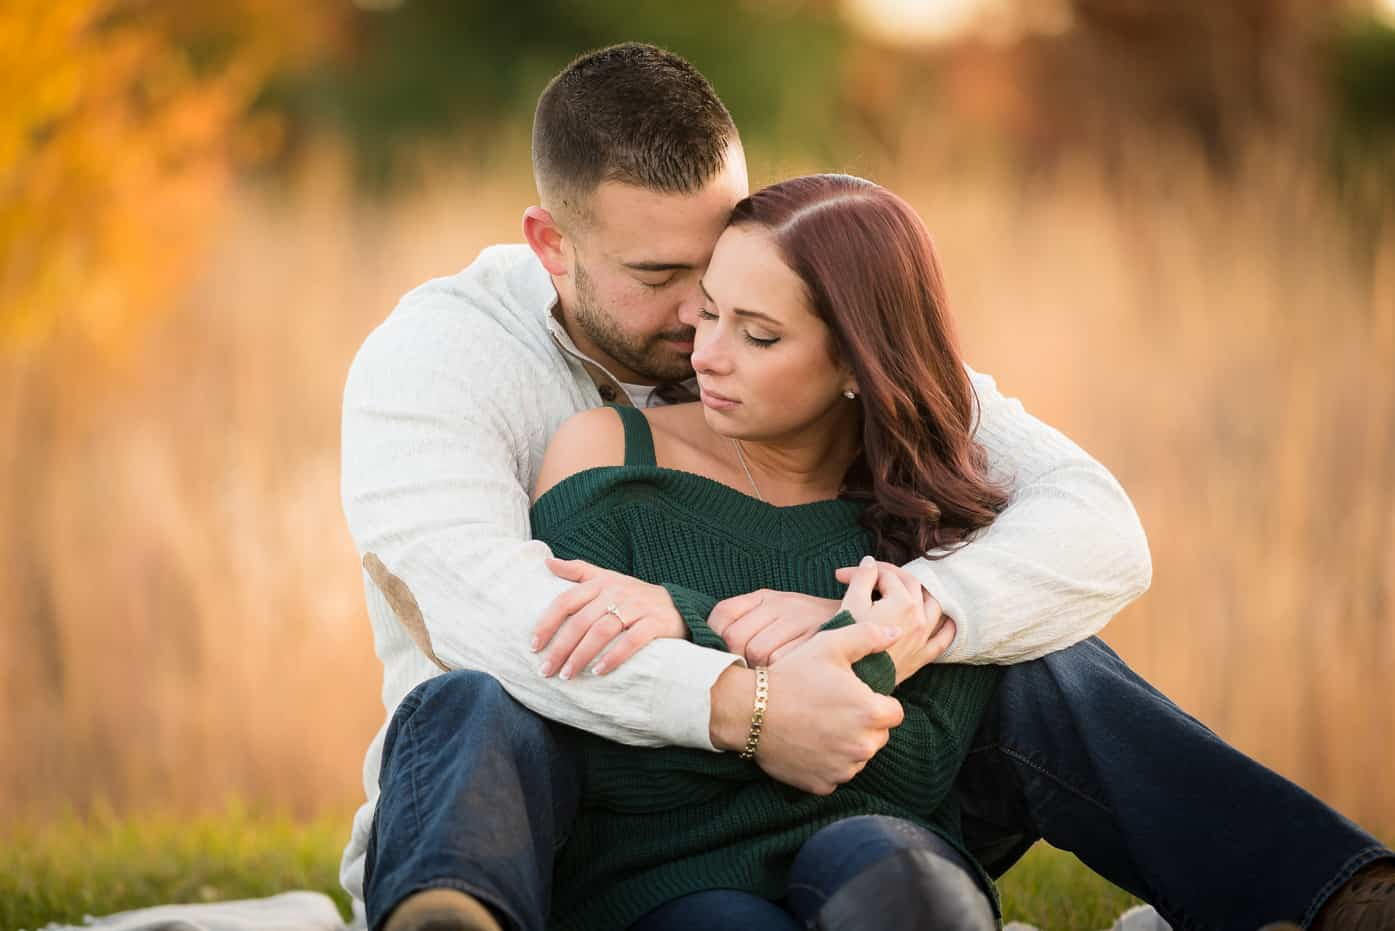 Fall is for Falling in Love - A Spectacular Engagement Photo Shoot